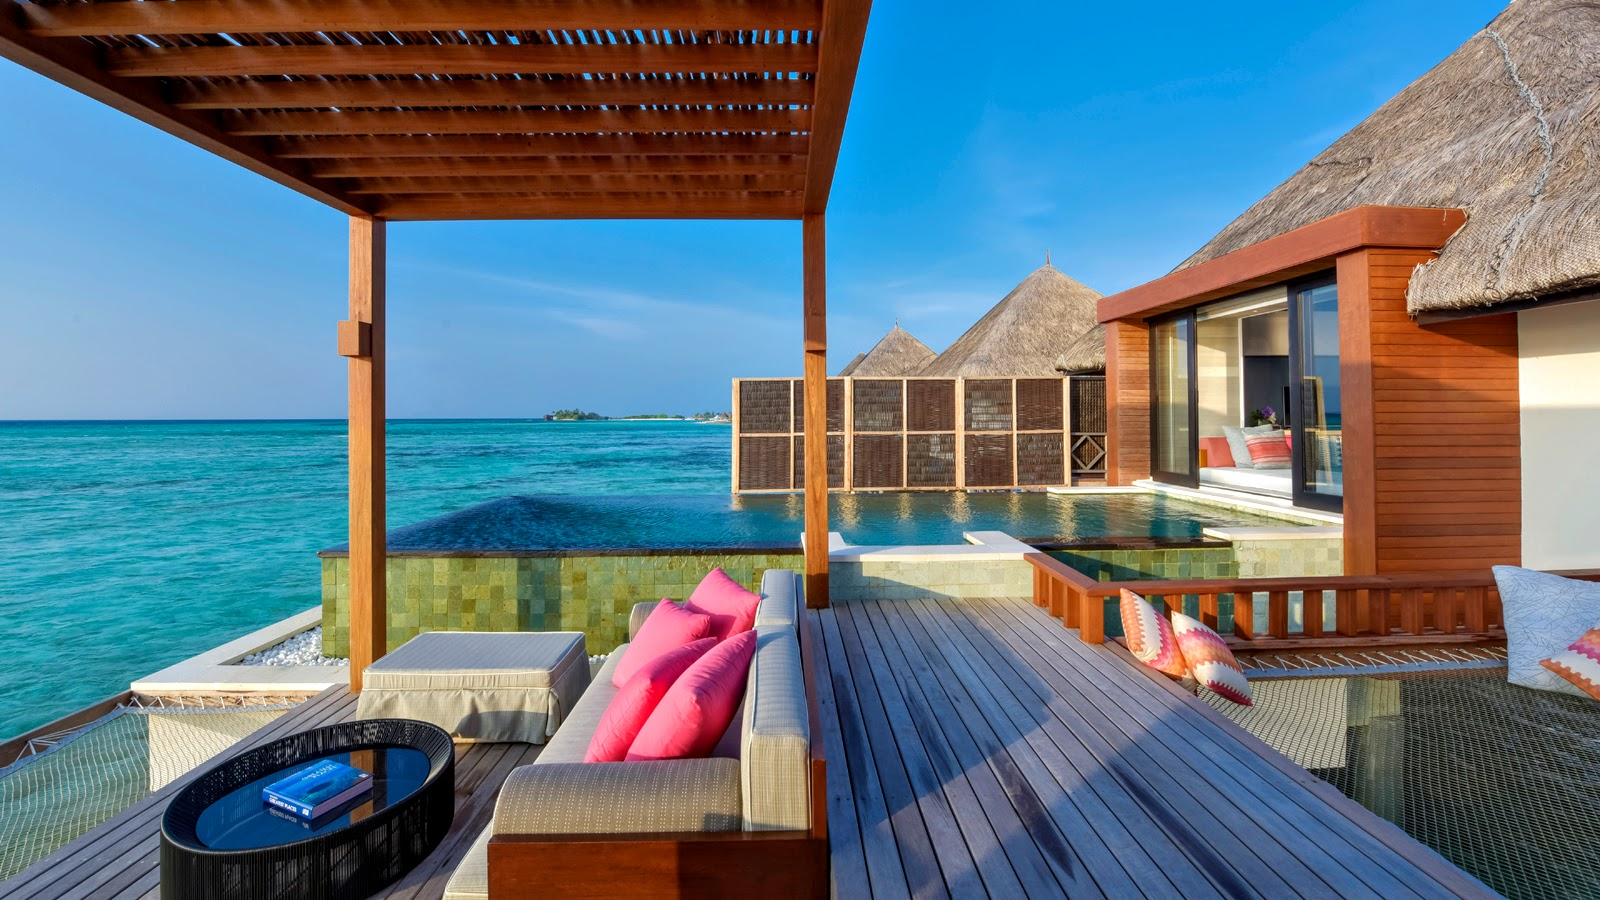 Four Seasons Resort Maldives At Kuda Huraa Announces